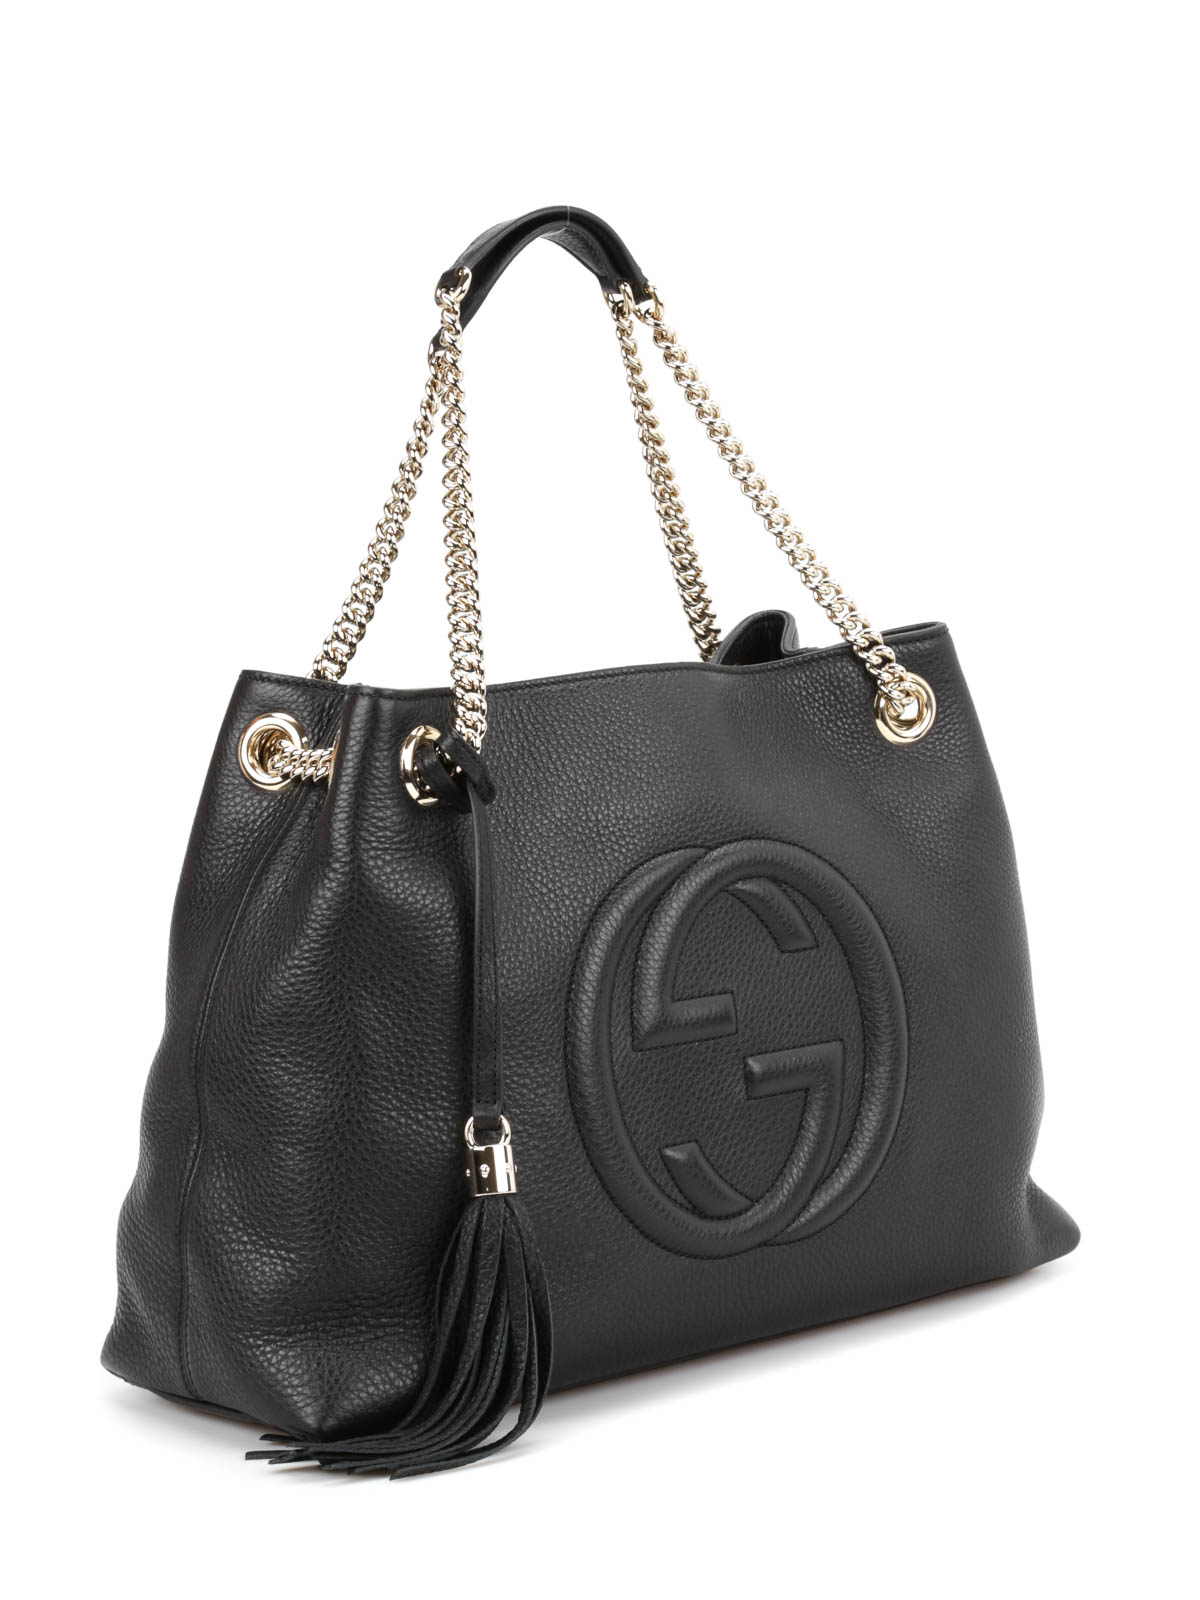 soho leather handle bag by gucci shoulder bags shop online at. Black Bedroom Furniture Sets. Home Design Ideas